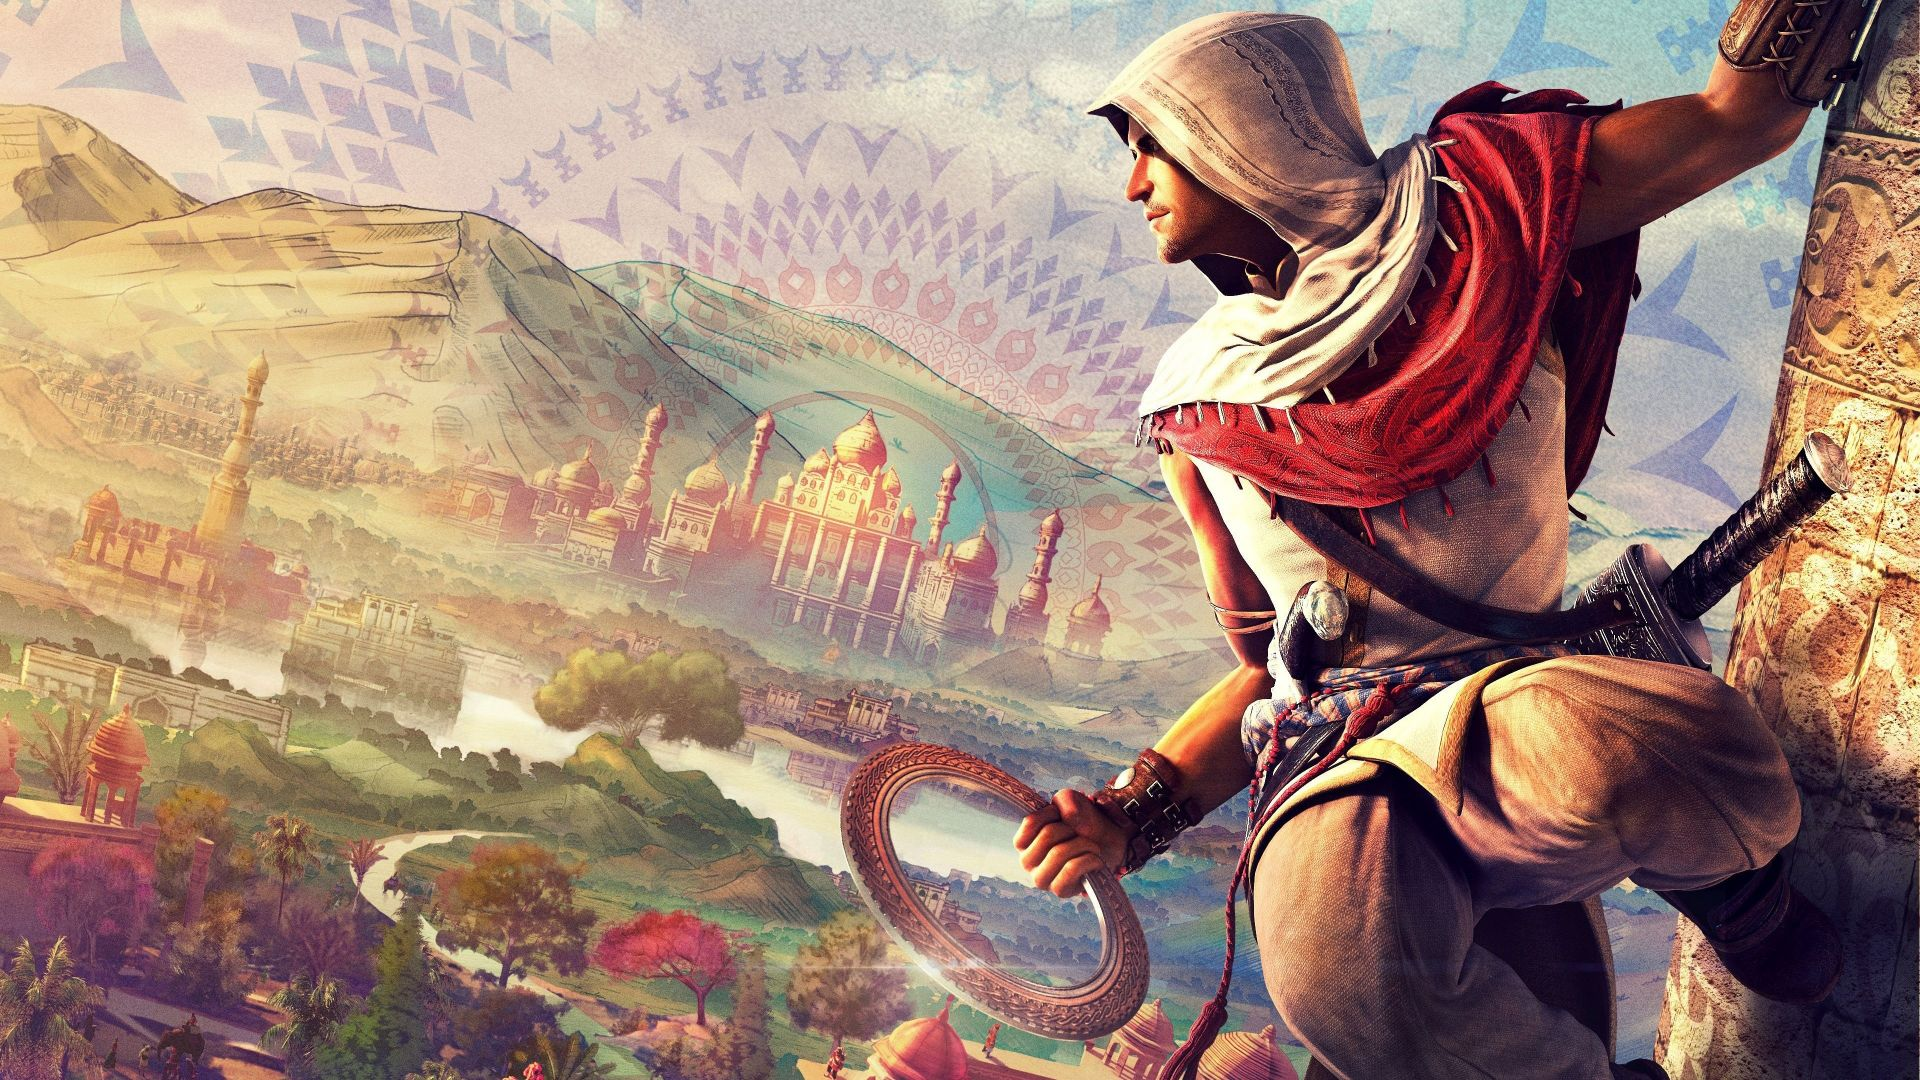 Assassin's Creed Chronicles Trilogy, Лучшие игры, игра, аркада, фантастика, Индия, ПК, PC, PS4, Xbox One, Assassin's Creed Chronicles Trilogy, Best Games, game, arcade, sci-fi, India, PC, PS4, Xbox One (horizontal)